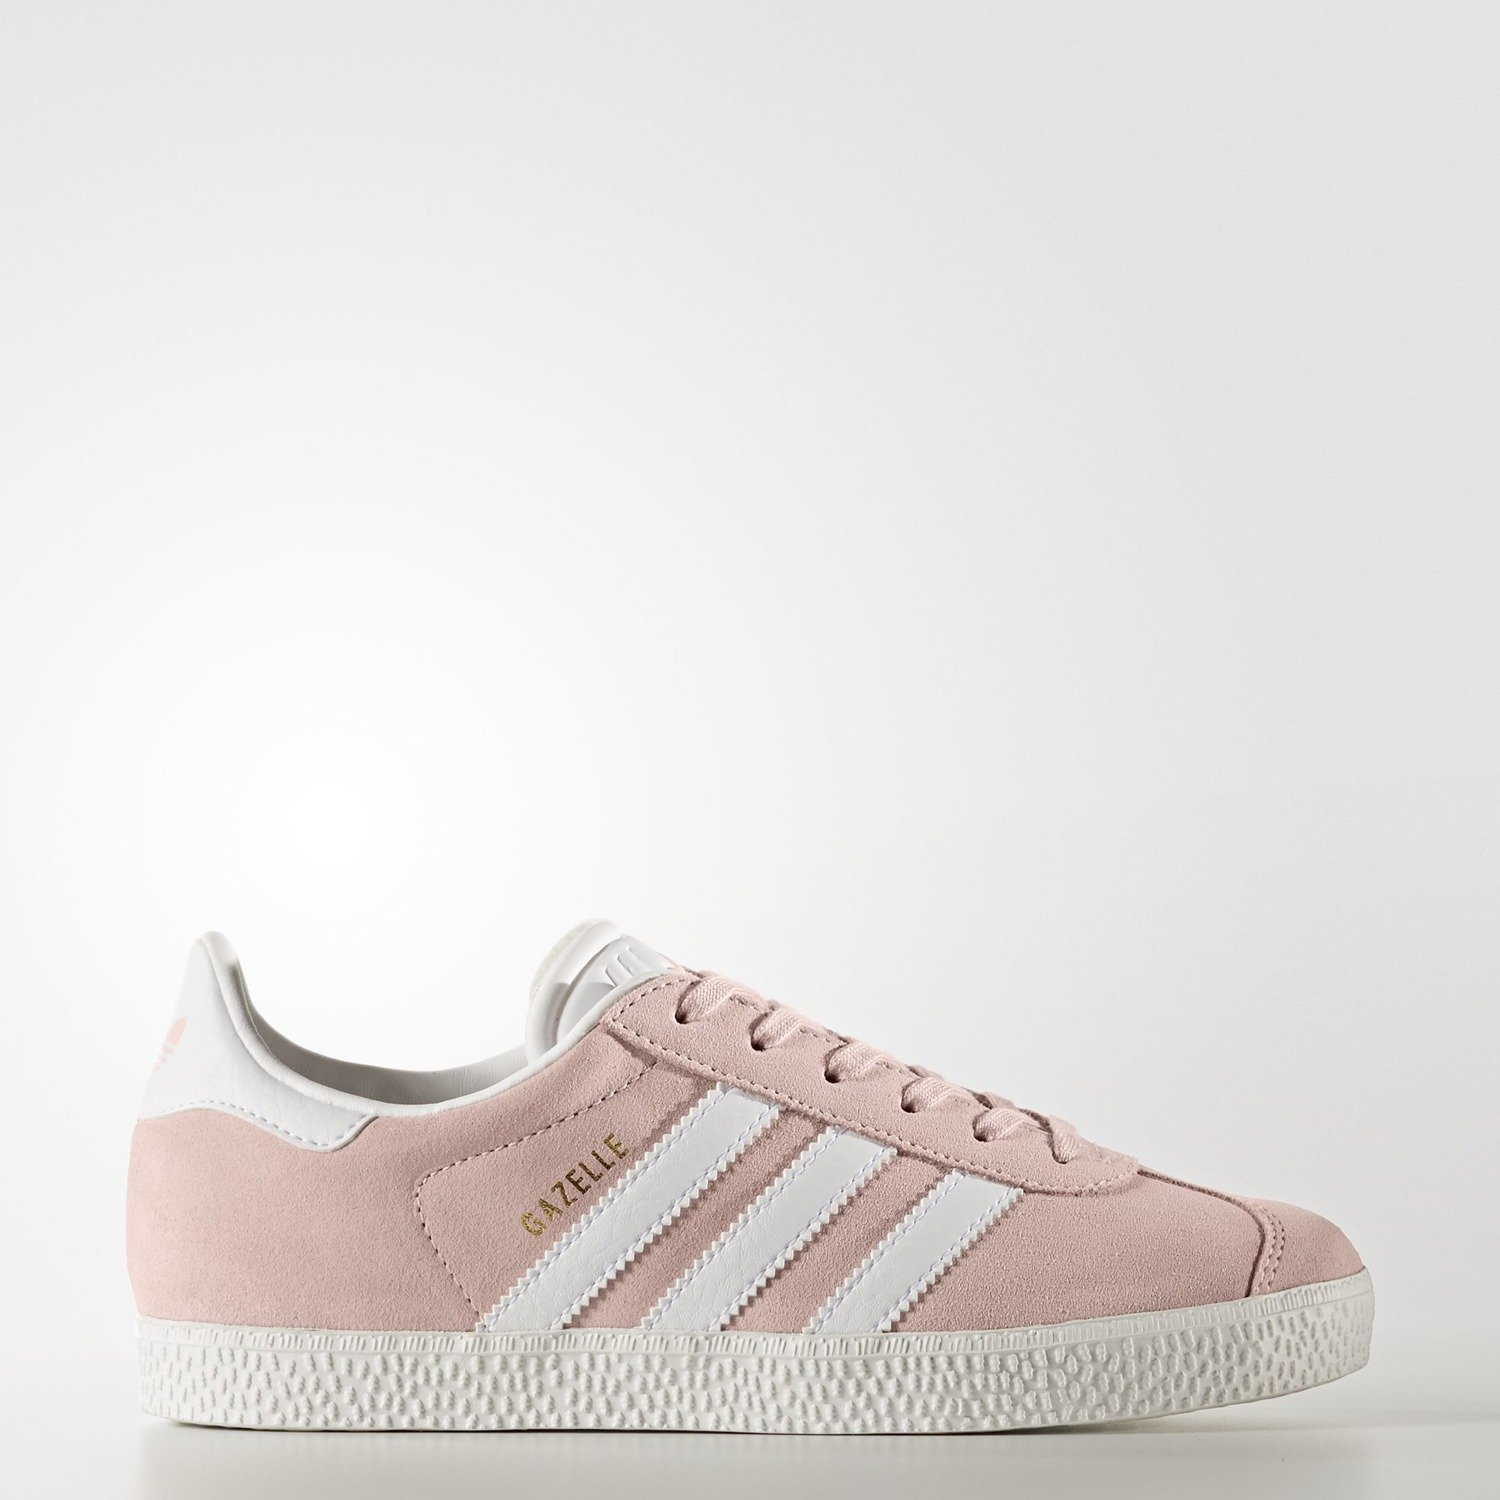 Buty juniorskie adidas Gazelle Icey Pink BY9544